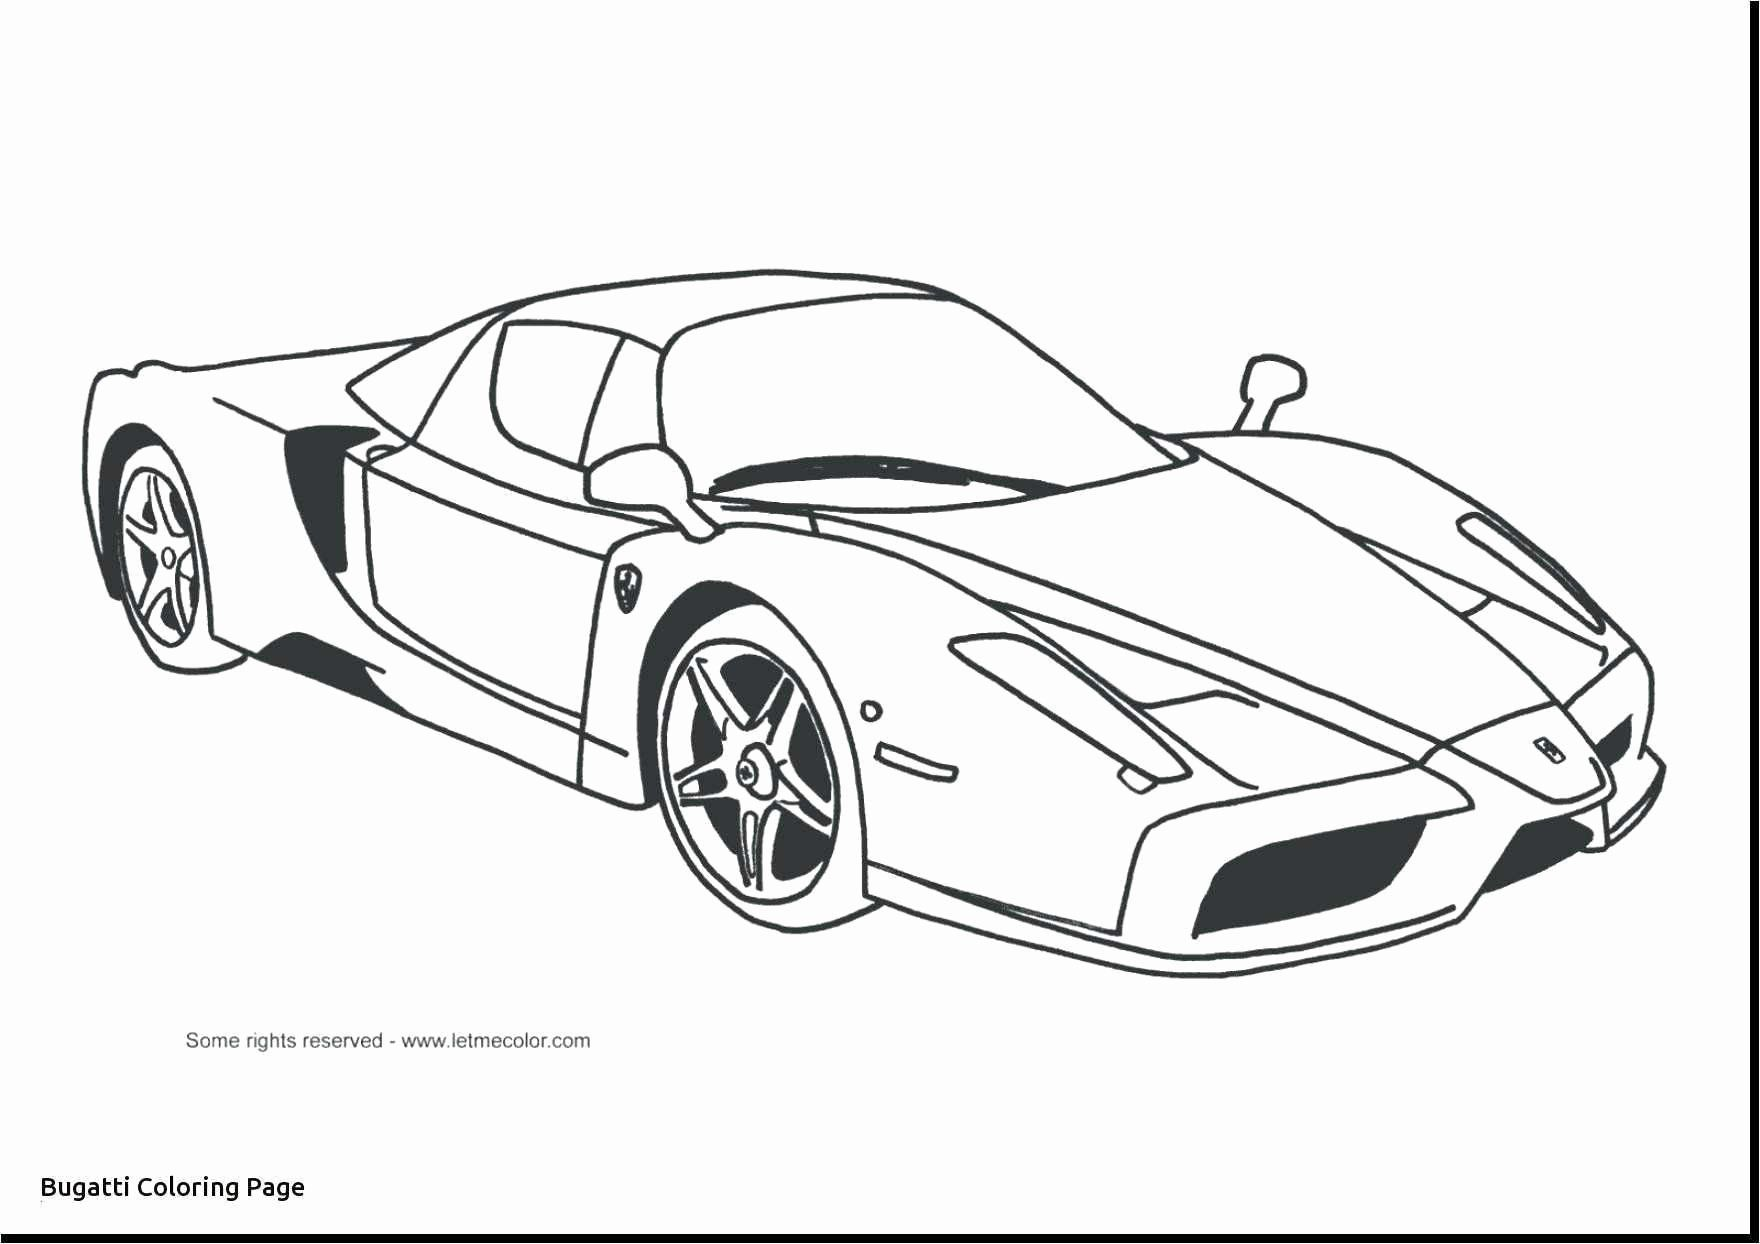 Nissan Skyline Coloring Pages Elegant Coloriages Bugatti Coloriage Nissan Gtr Gtr Coloring In 2020 Race Car Coloring Pages Cars Coloring Pages Sports Coloring Pages